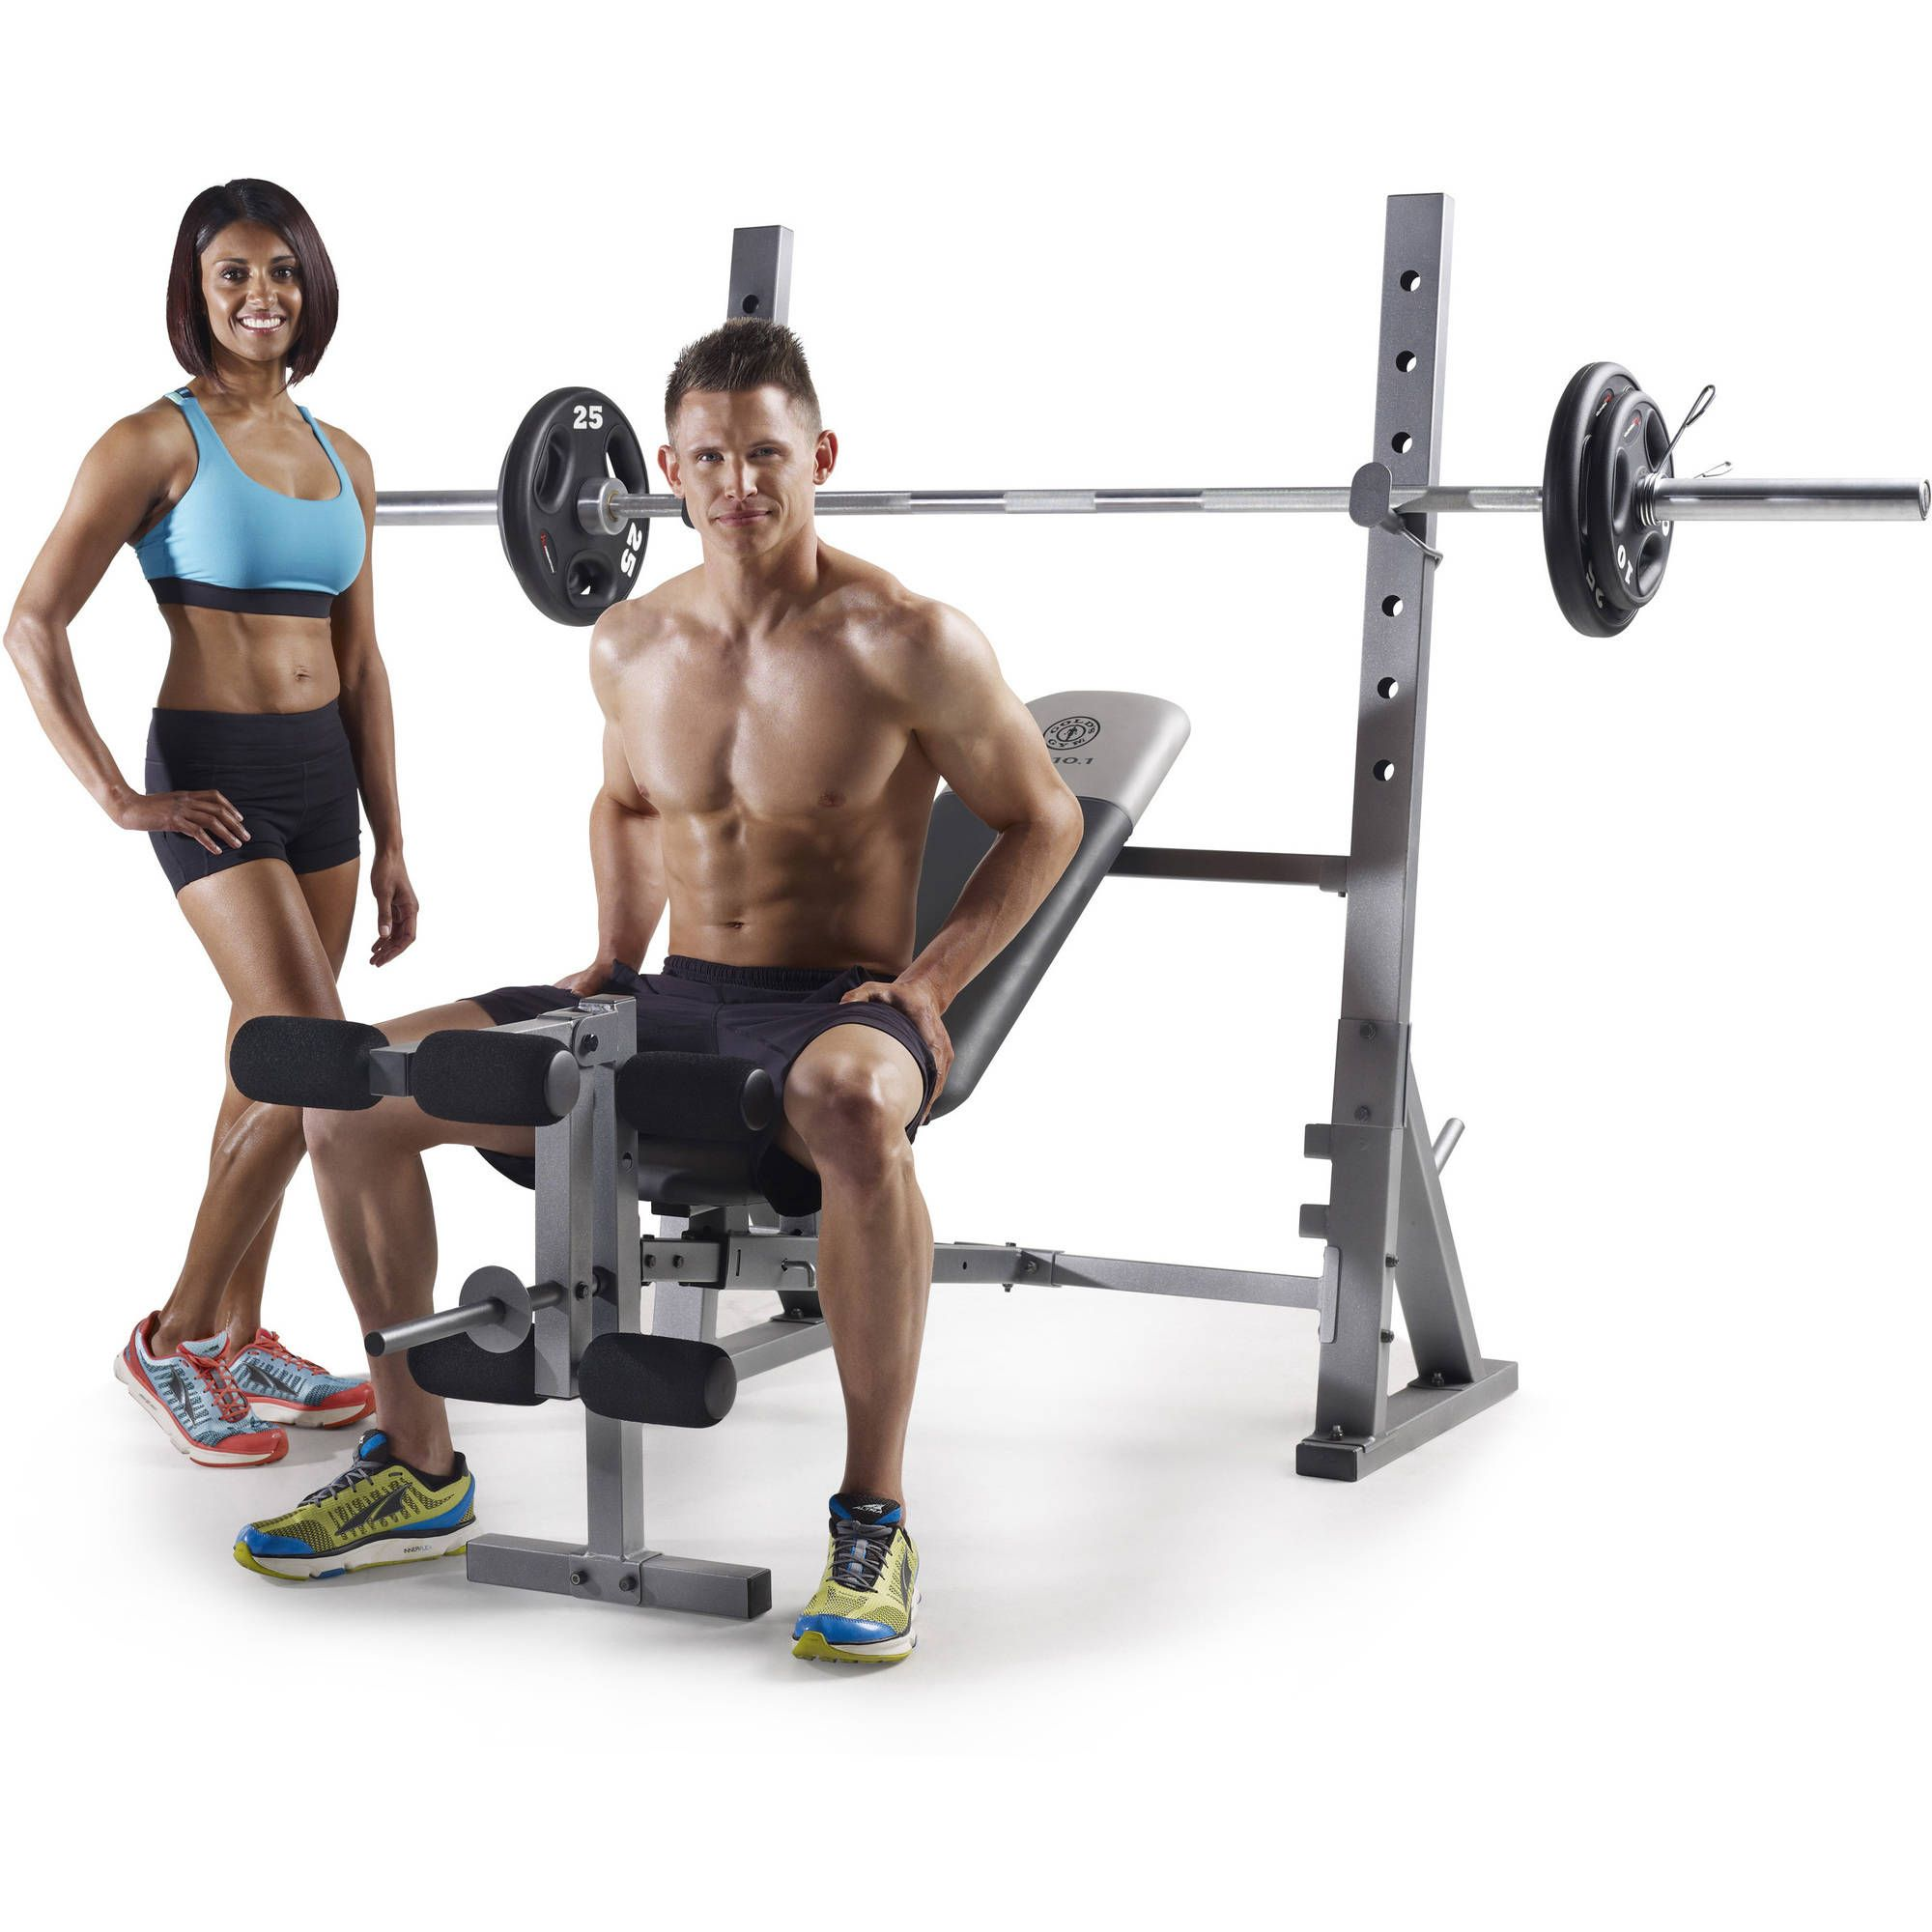 golds gym xr 10 1 olympic weight bench review best fitness